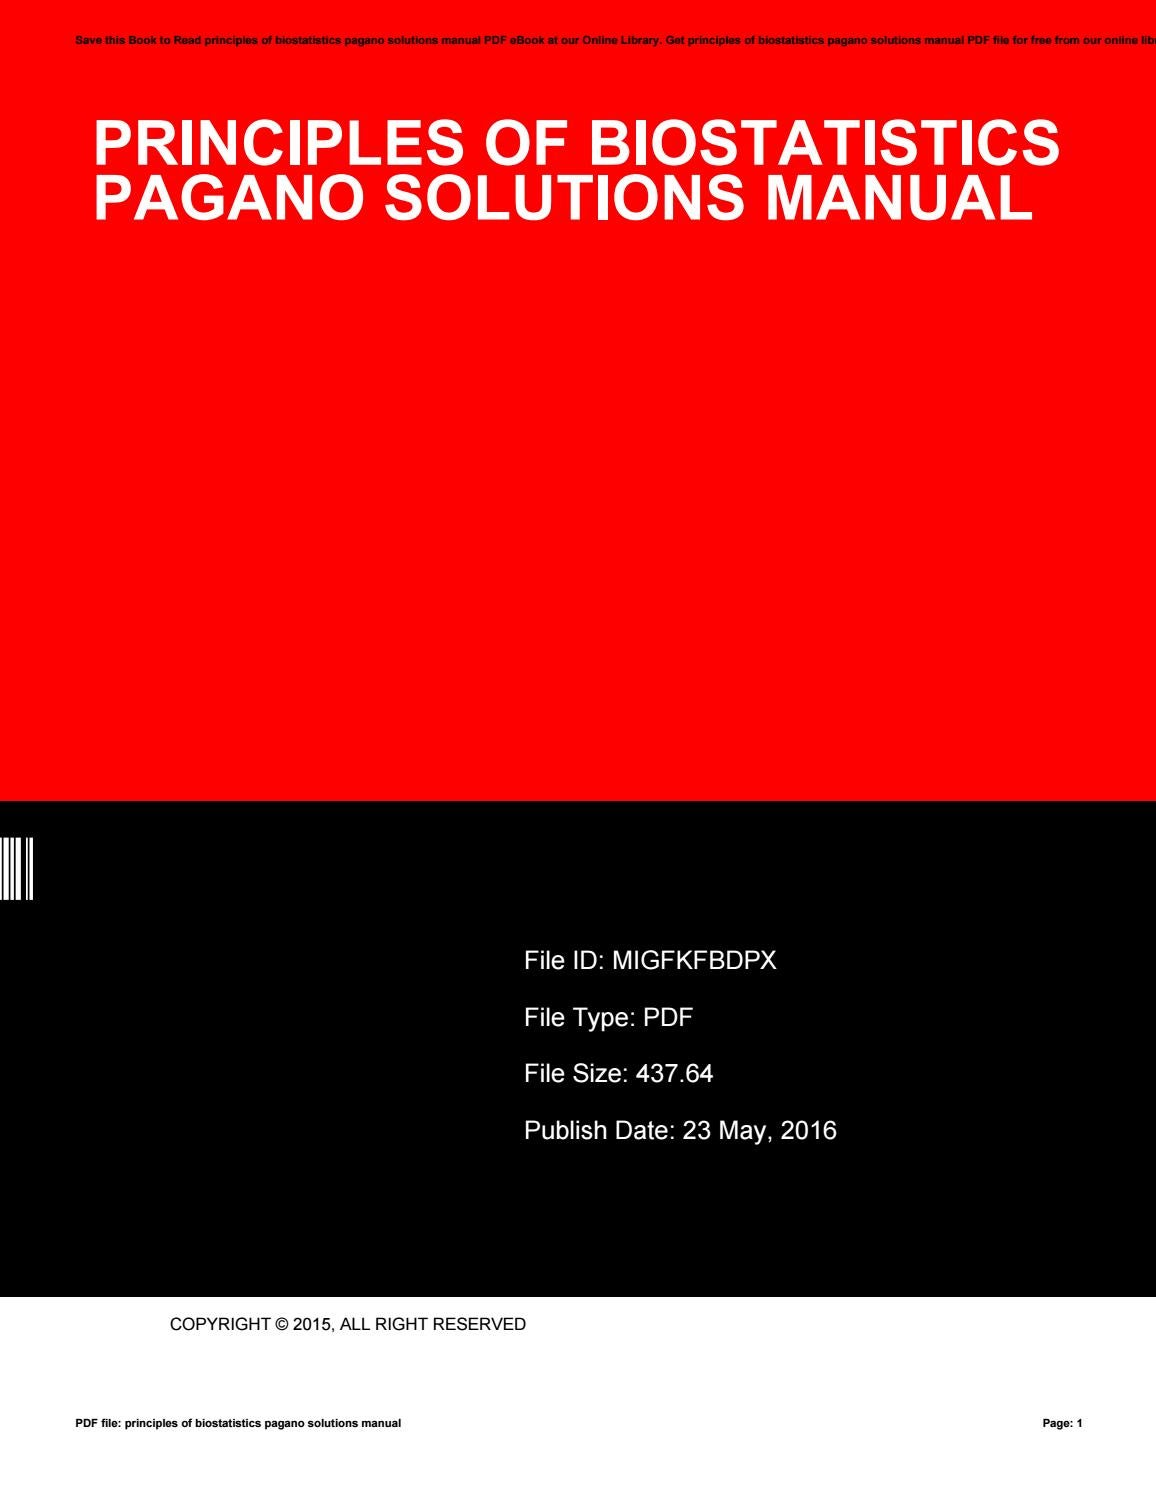 Principles of biostatistics pagano solutions manual by LouisLawson2001 -  issuu